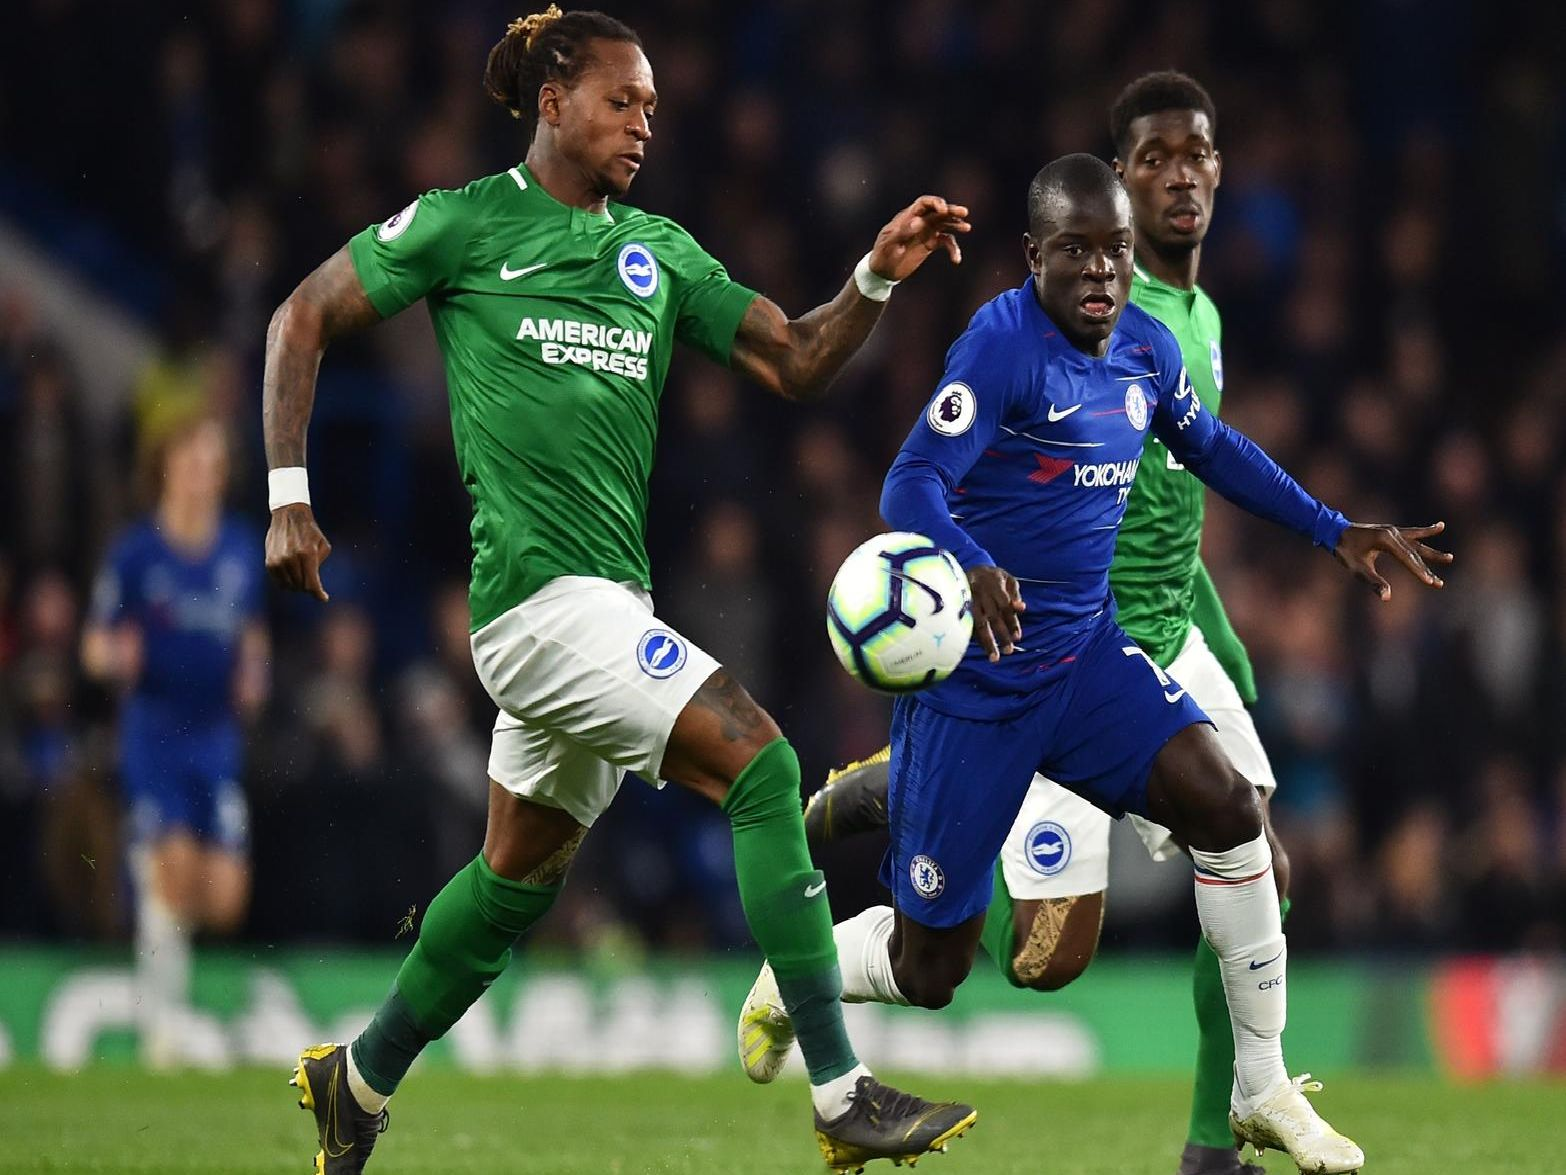 Brighton defender Gaetan Bong challenges N'Golo Kante. Picture by Getty Images